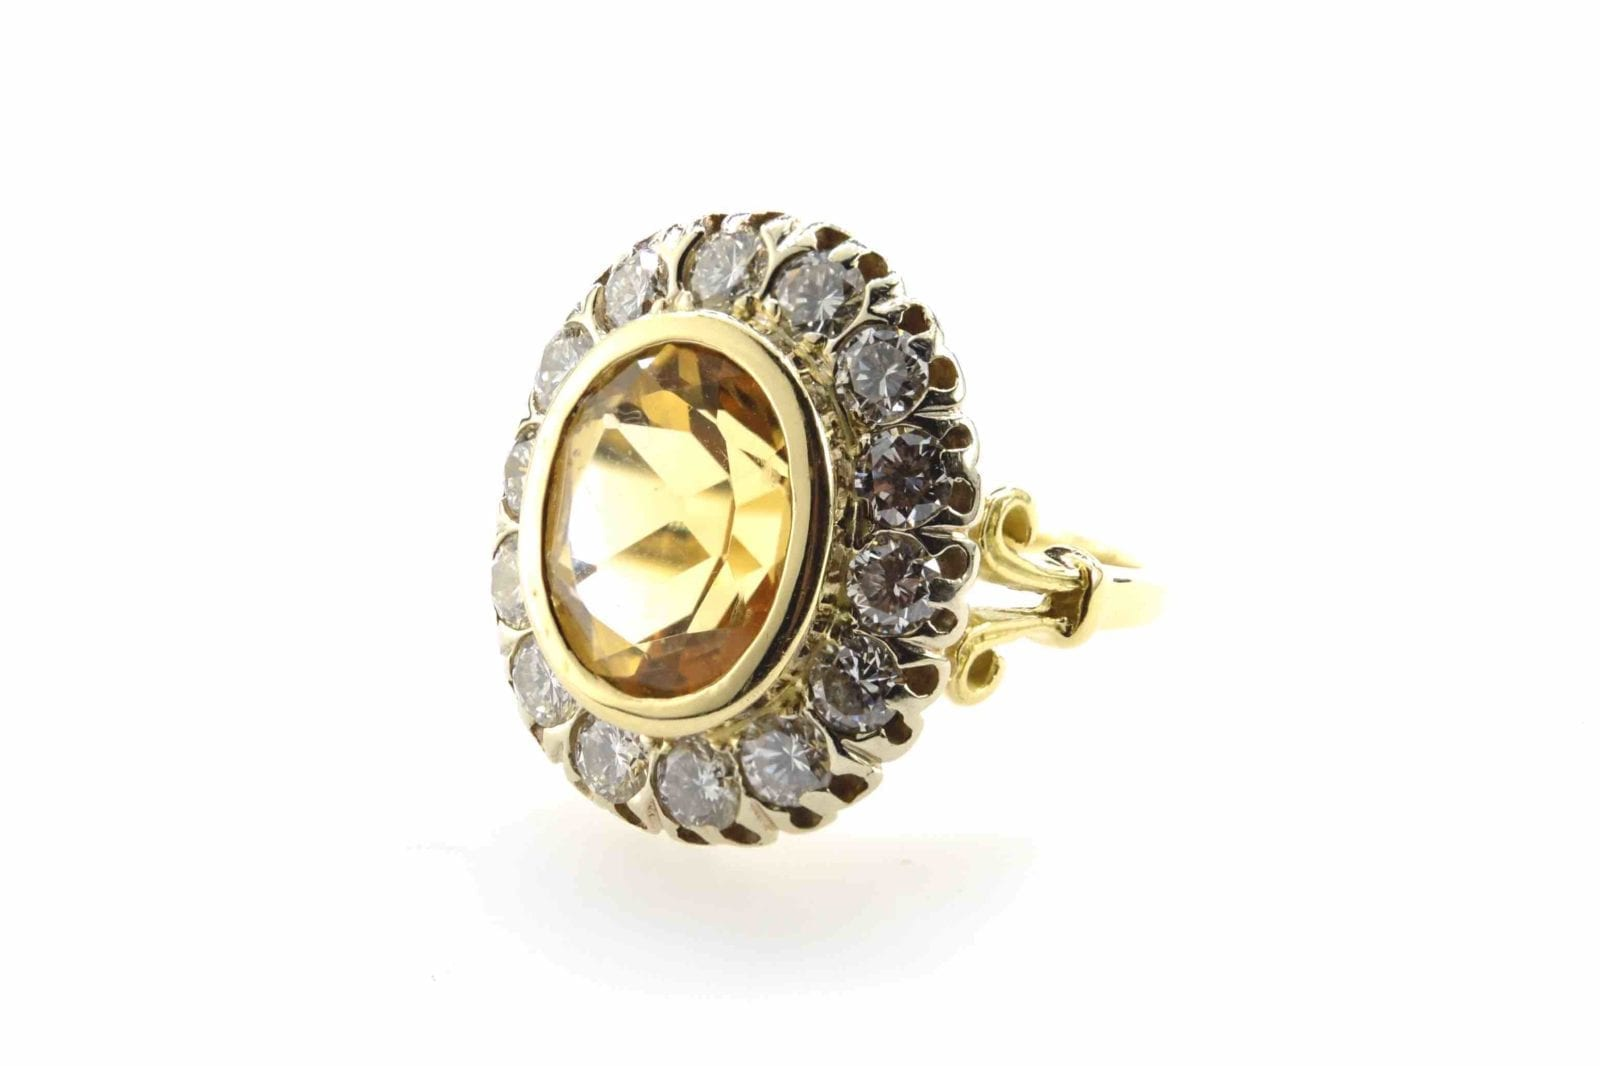 Bague citrine et diamants en or jaune 18k